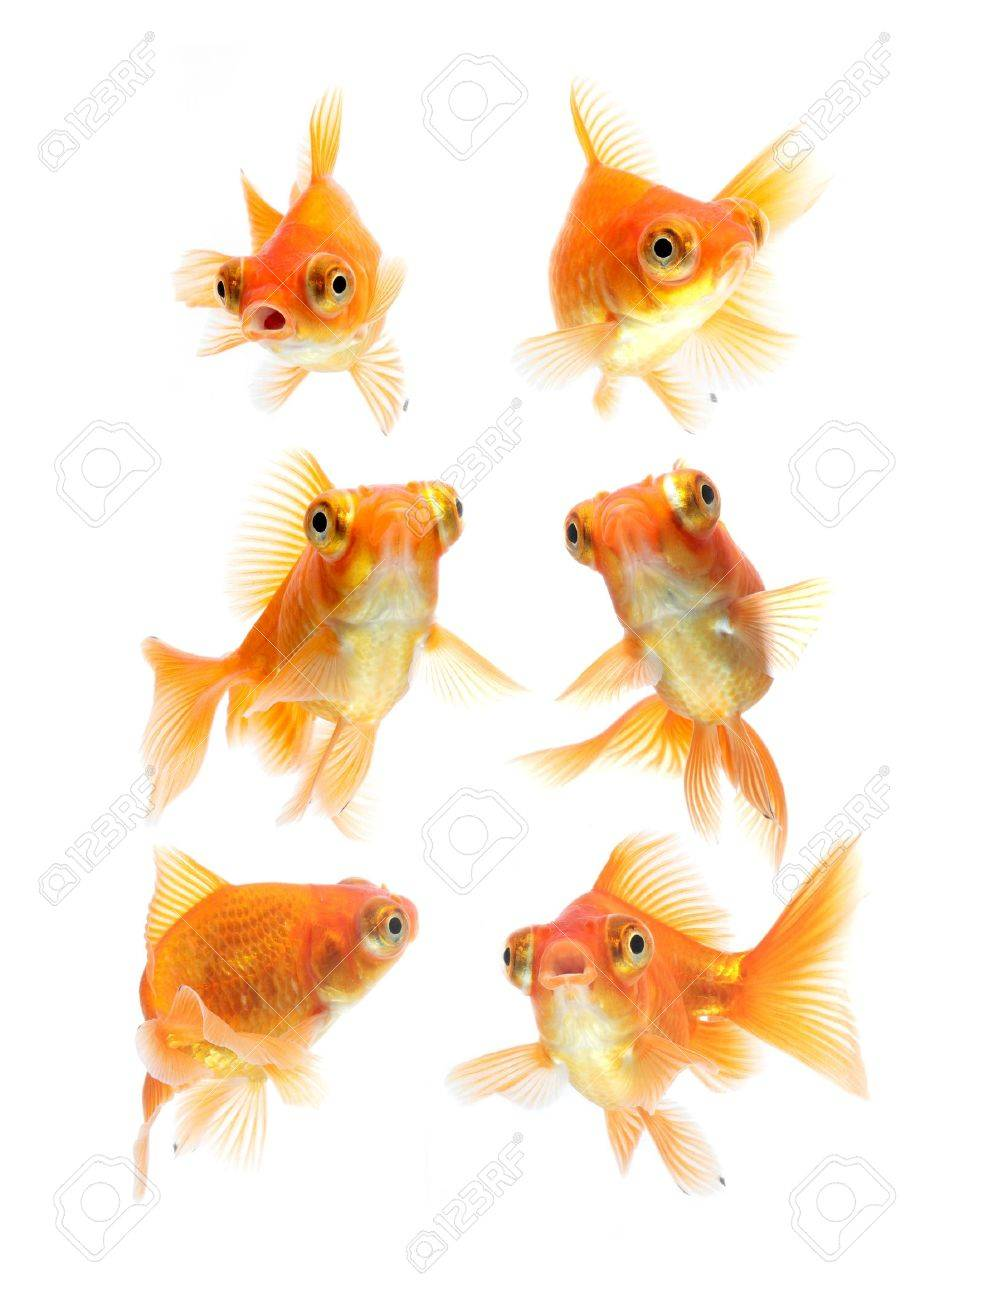 goldfish isolated on white background Stock Photo - 11910337